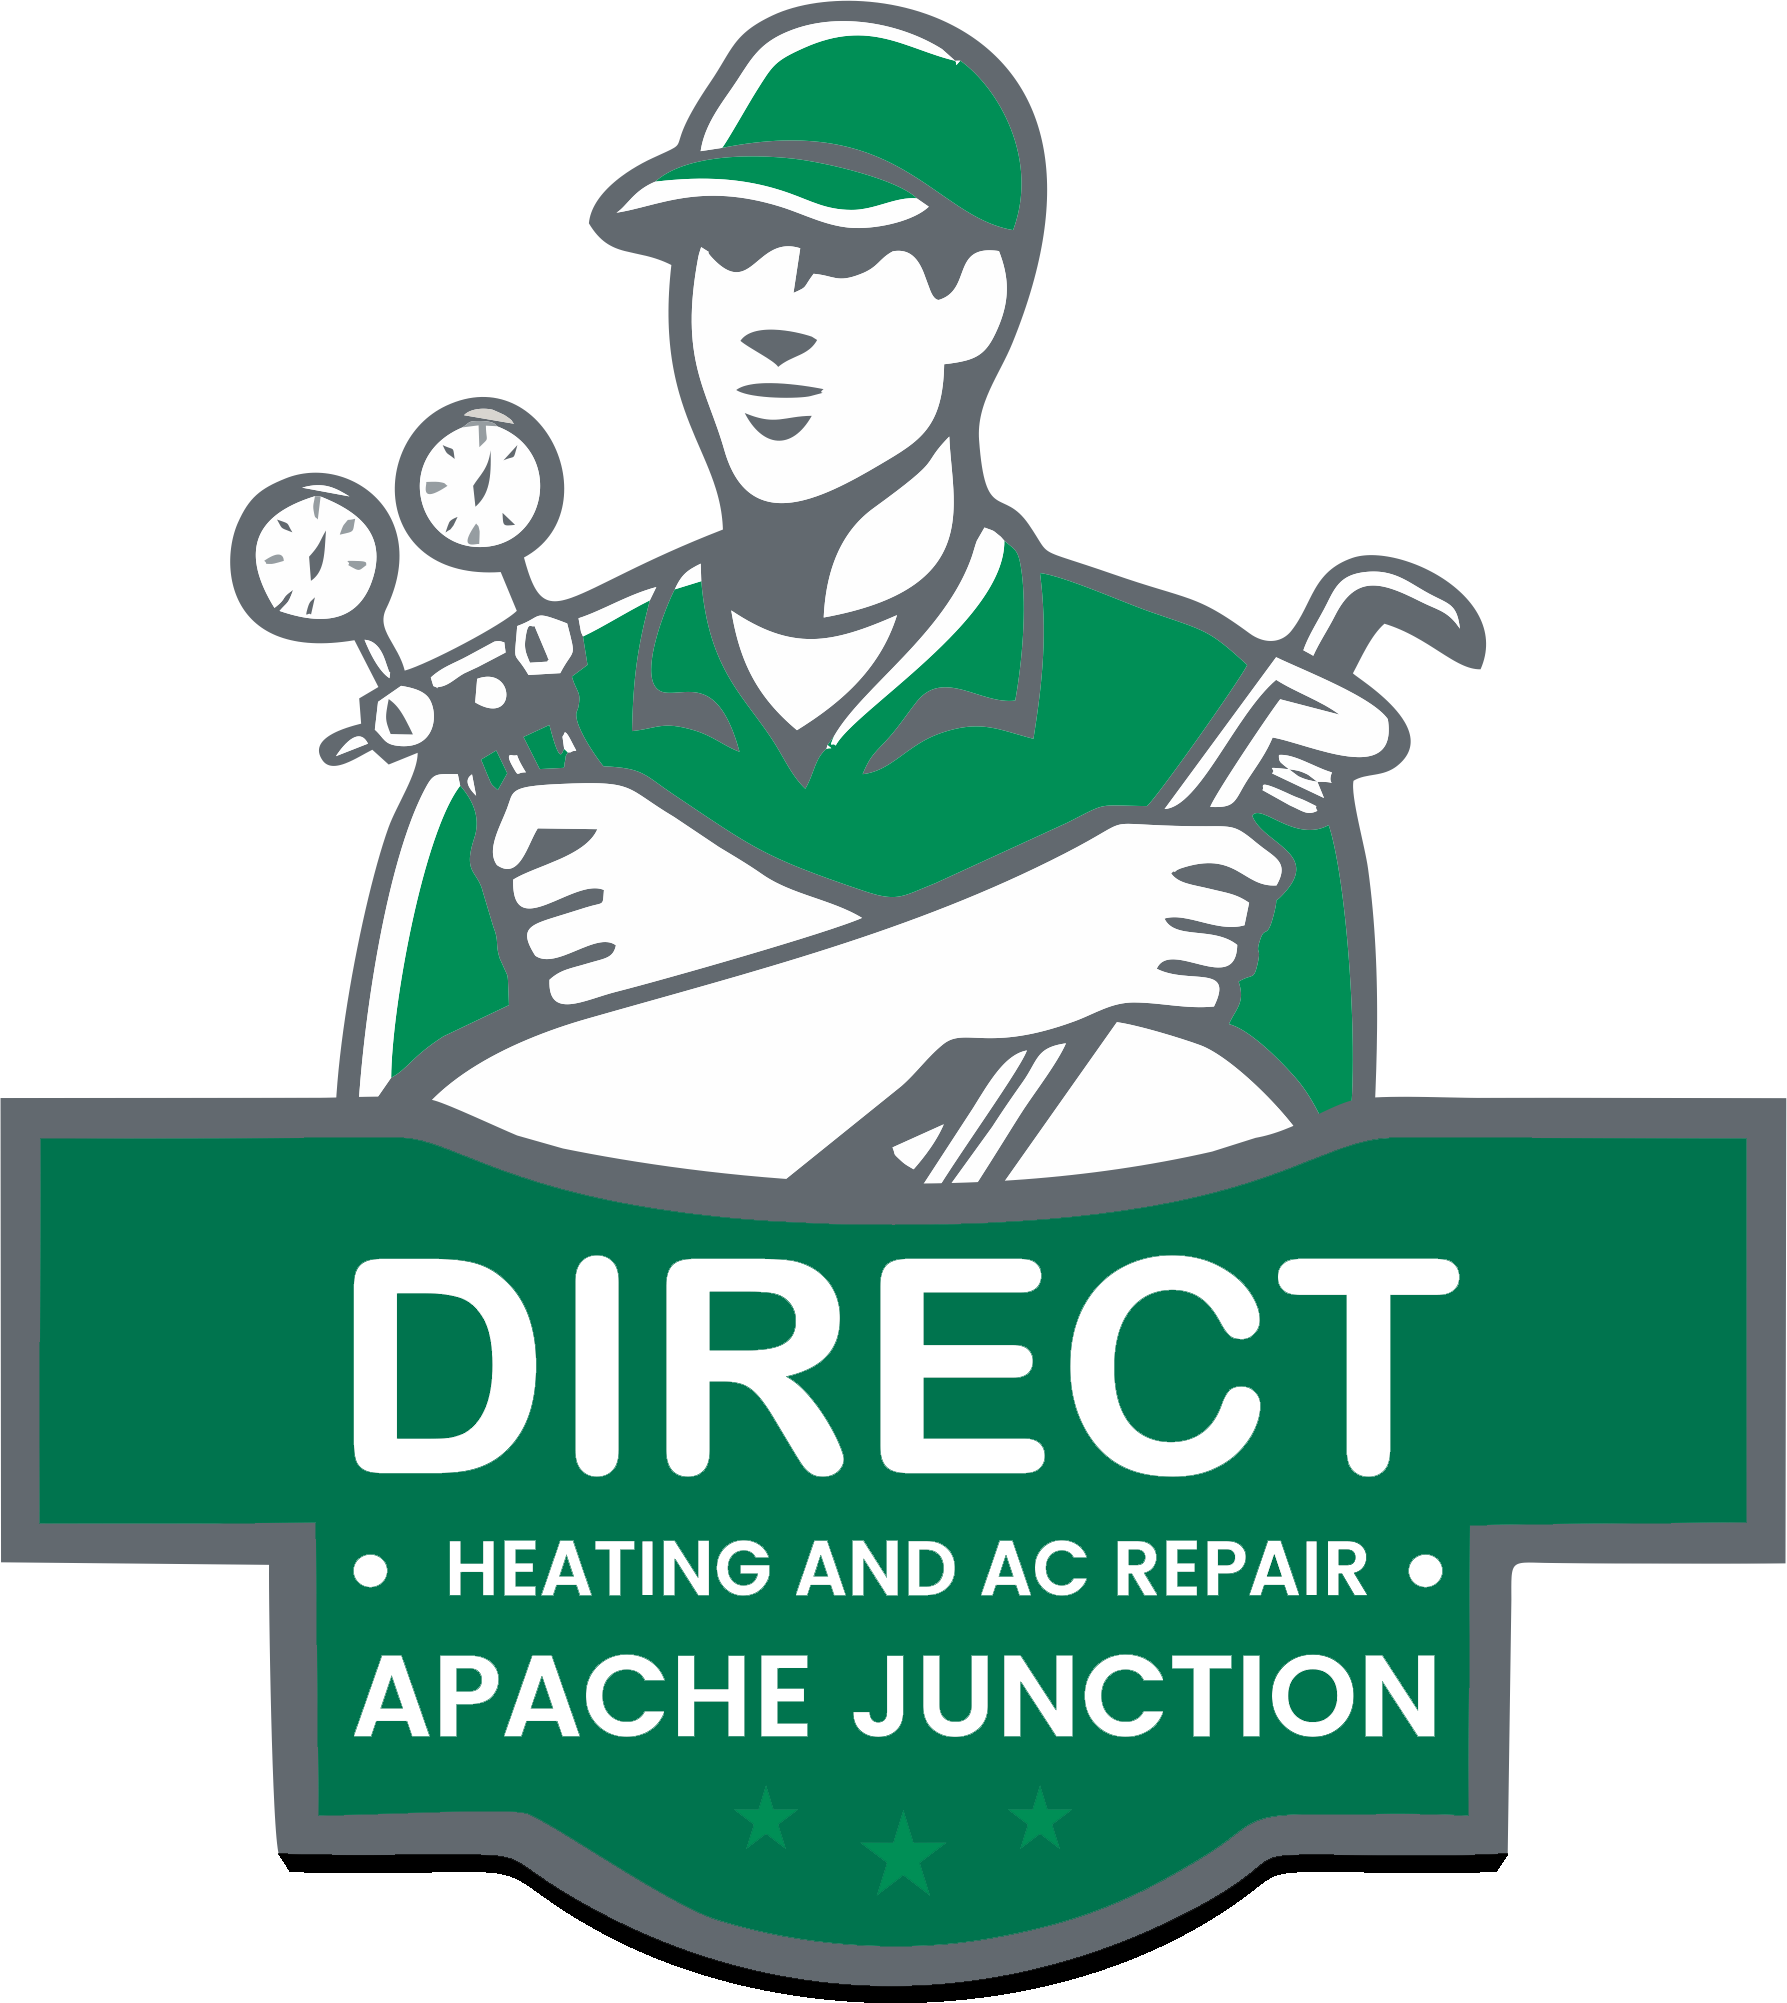 Apache Junction Heating And Ac Repair Provides The Best Heating Ac Repair Services In Apache Junctio Ac Repair Services Ac Repair Air Conditioning Technician